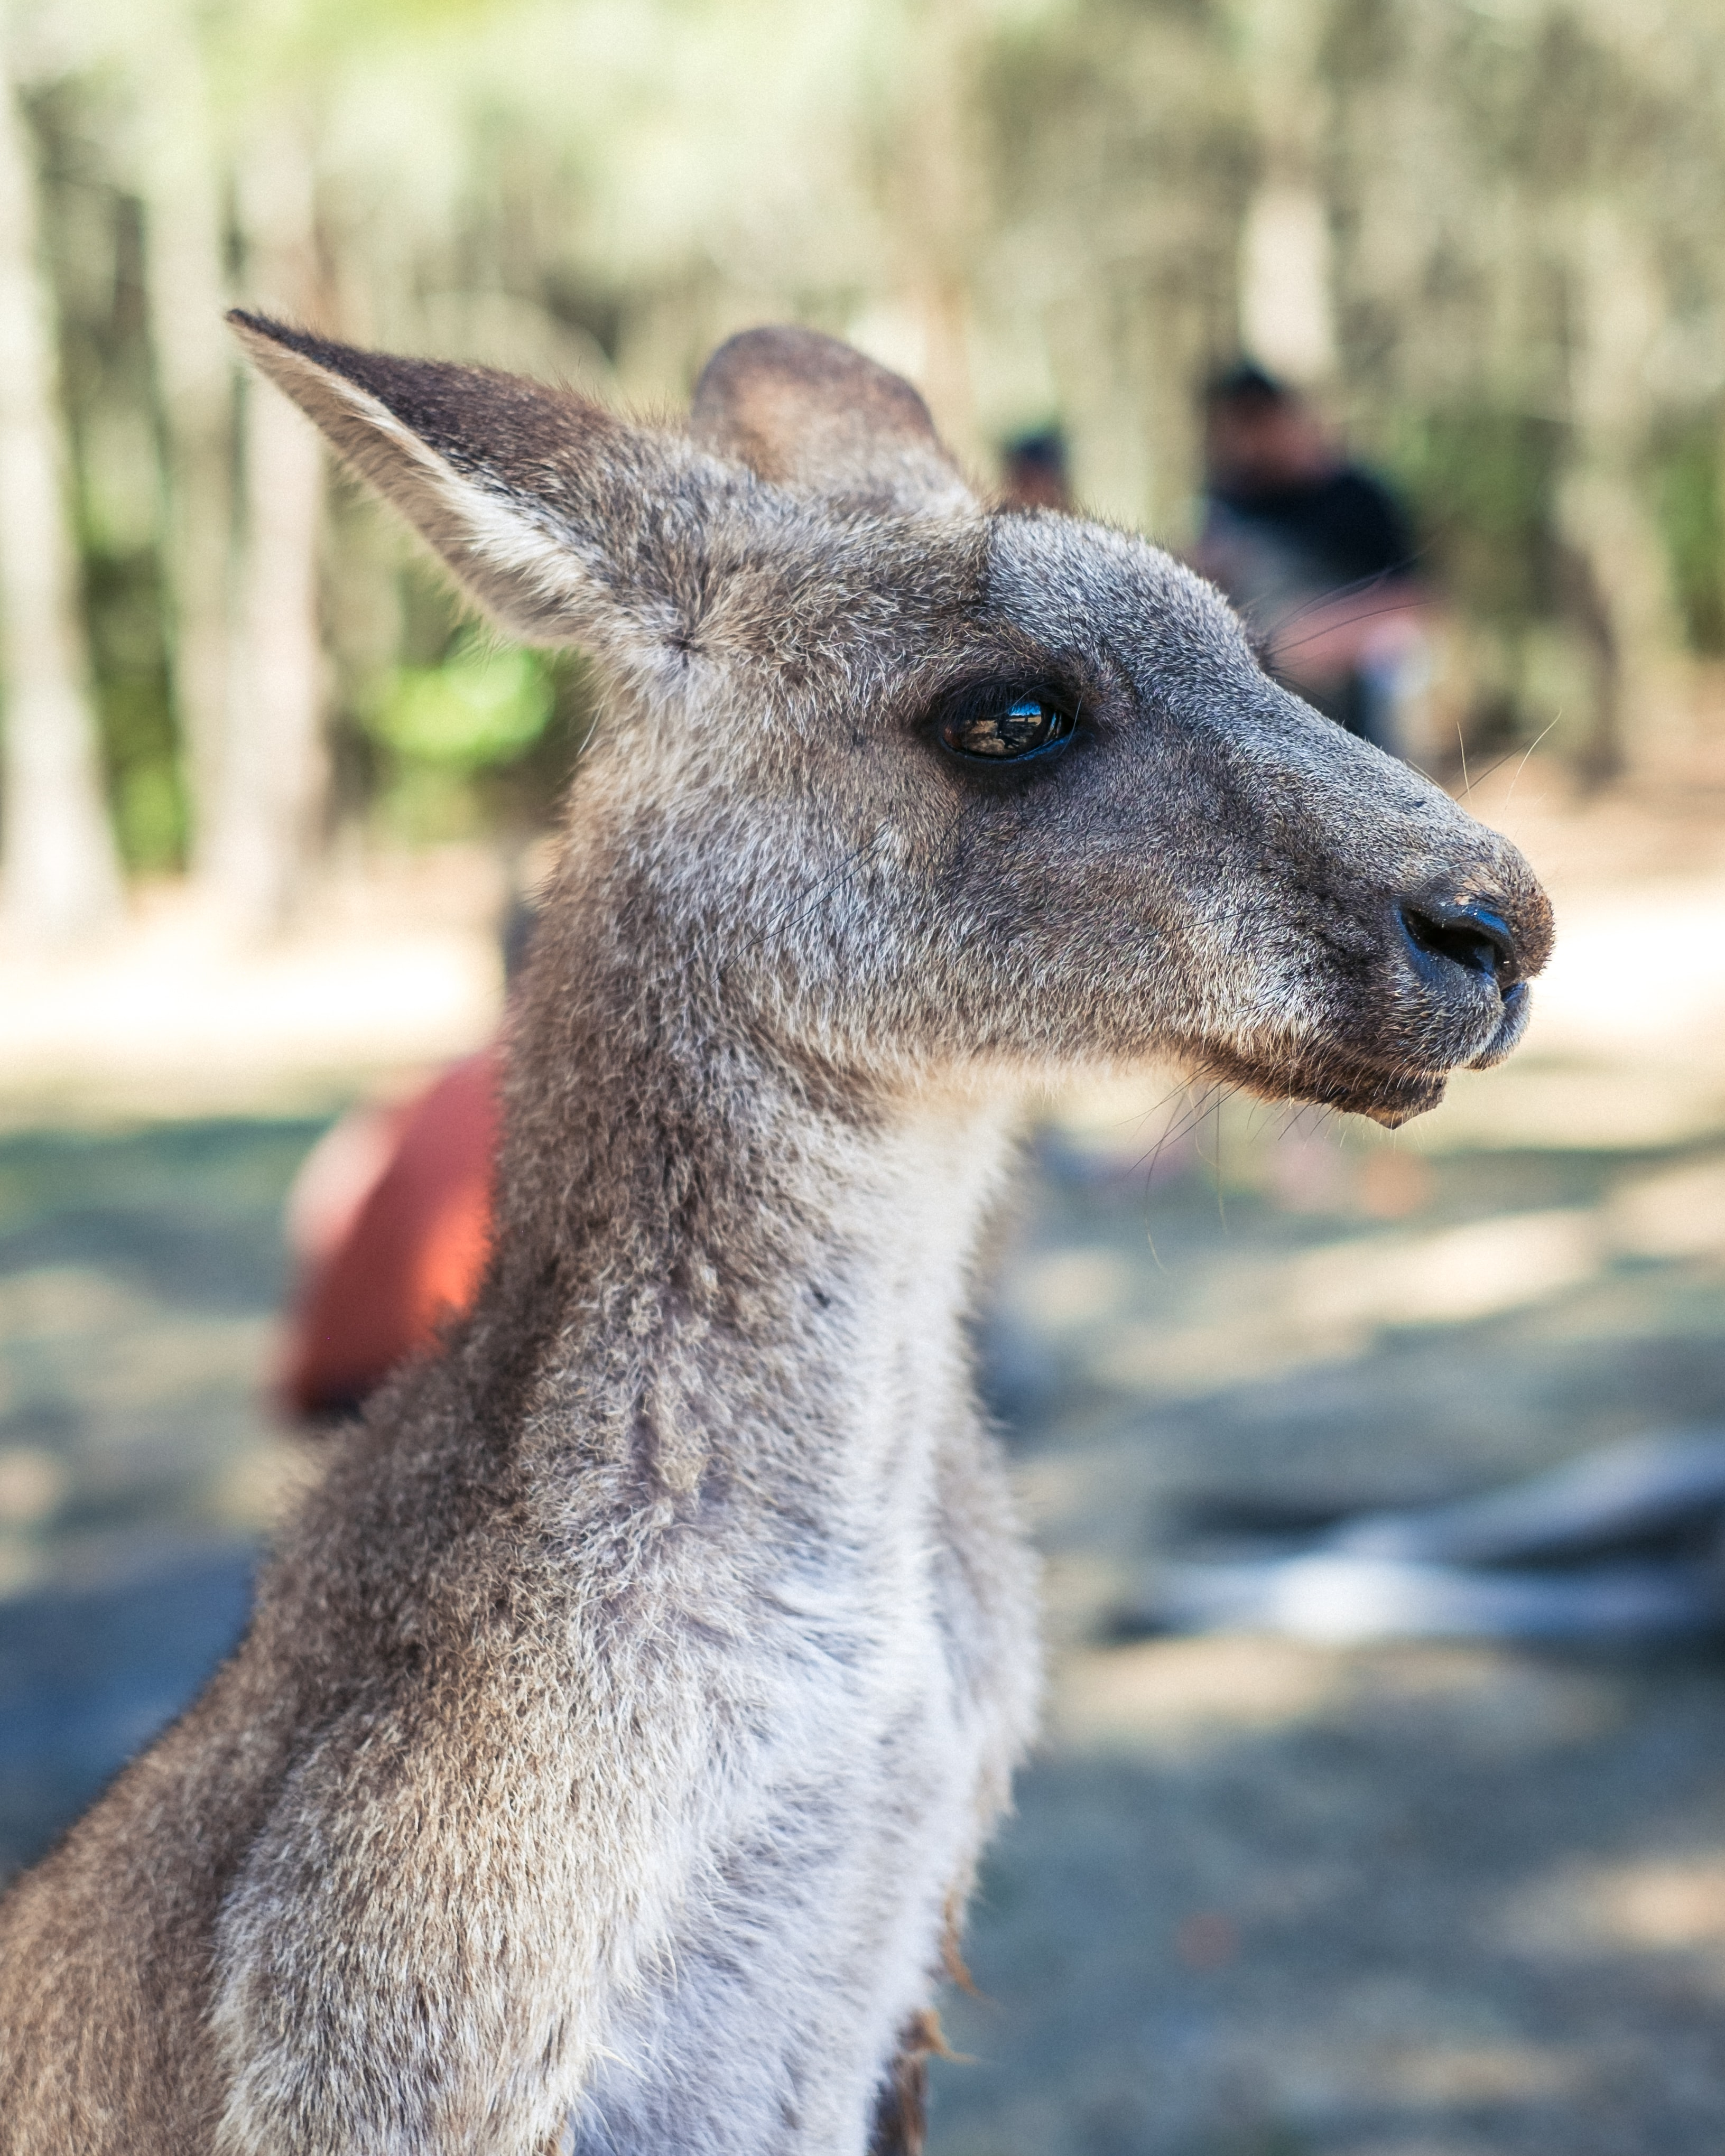 closeup photo of gray kangaroo